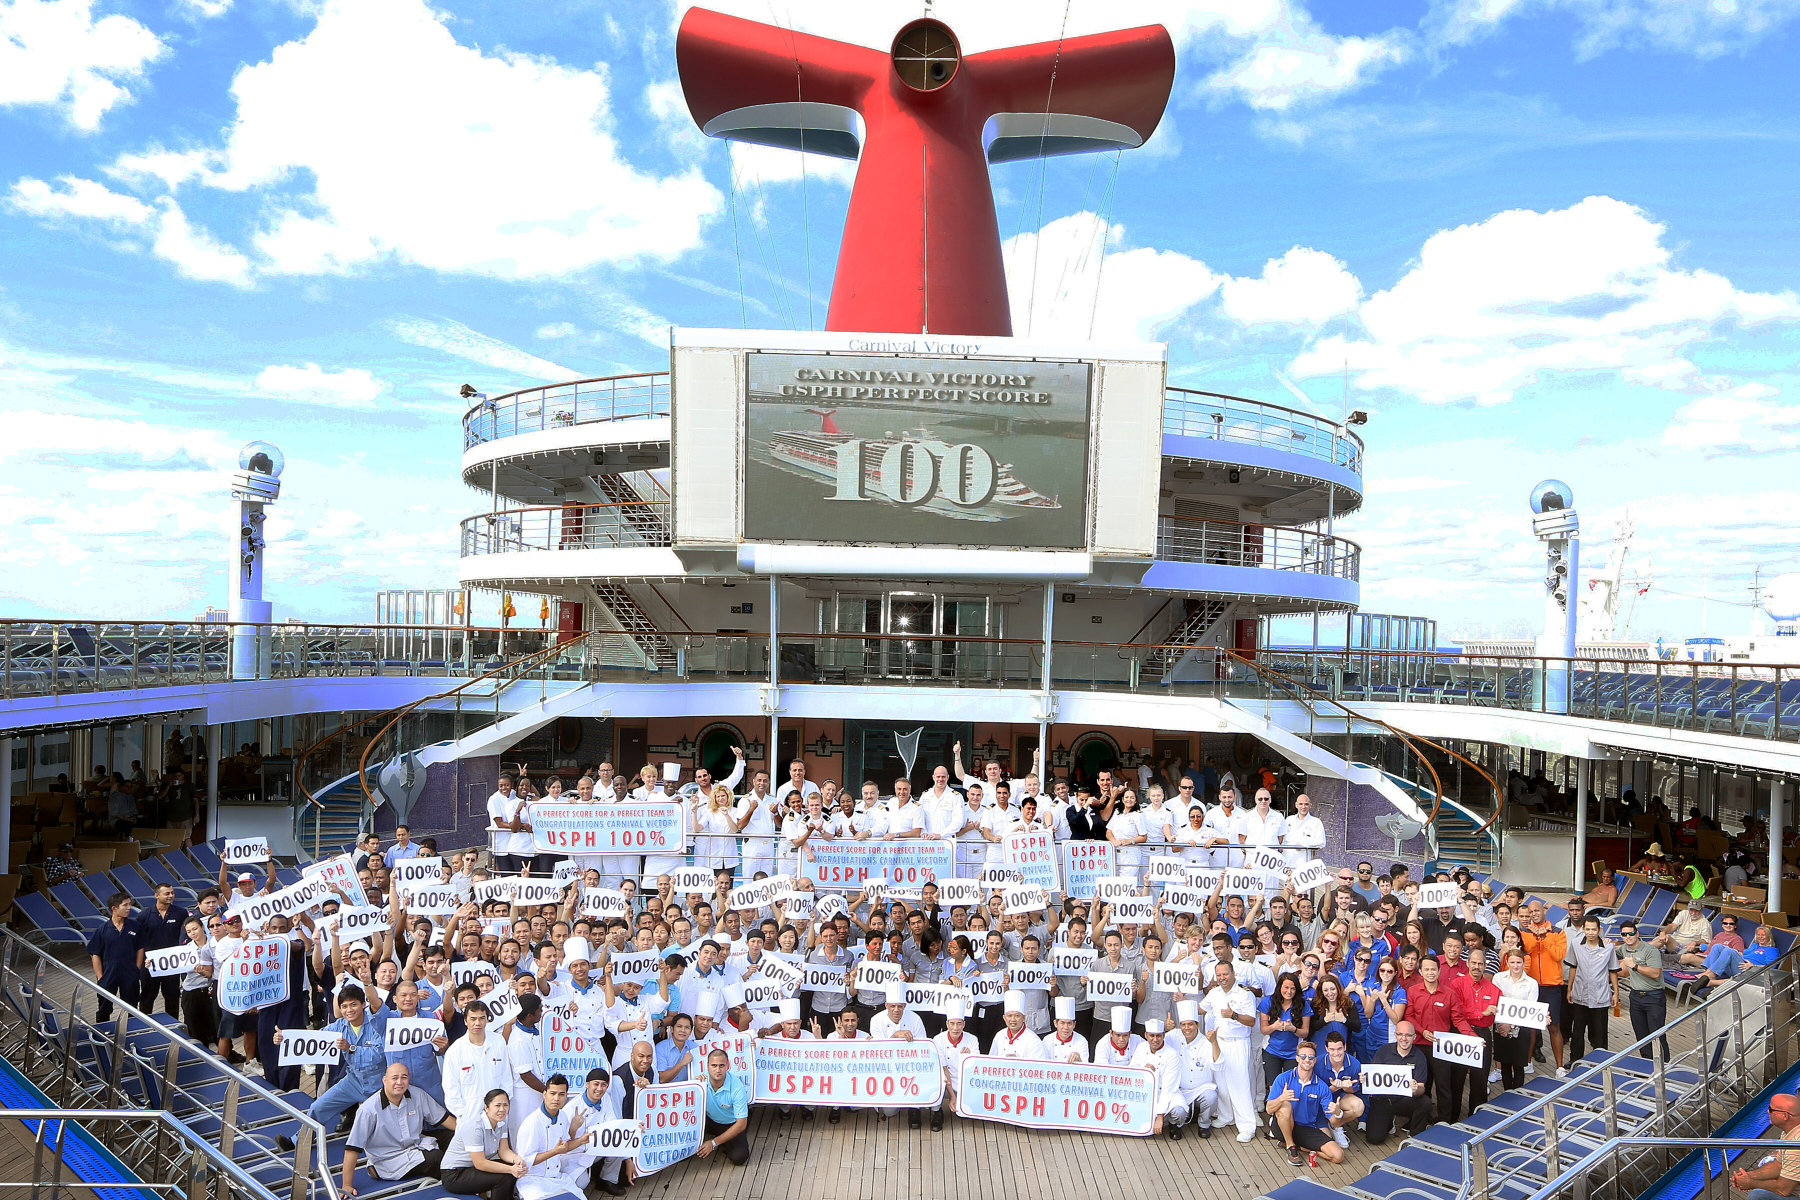 Carnival Victory Earns Perfect 100 U.S.P.H. Inspection Score